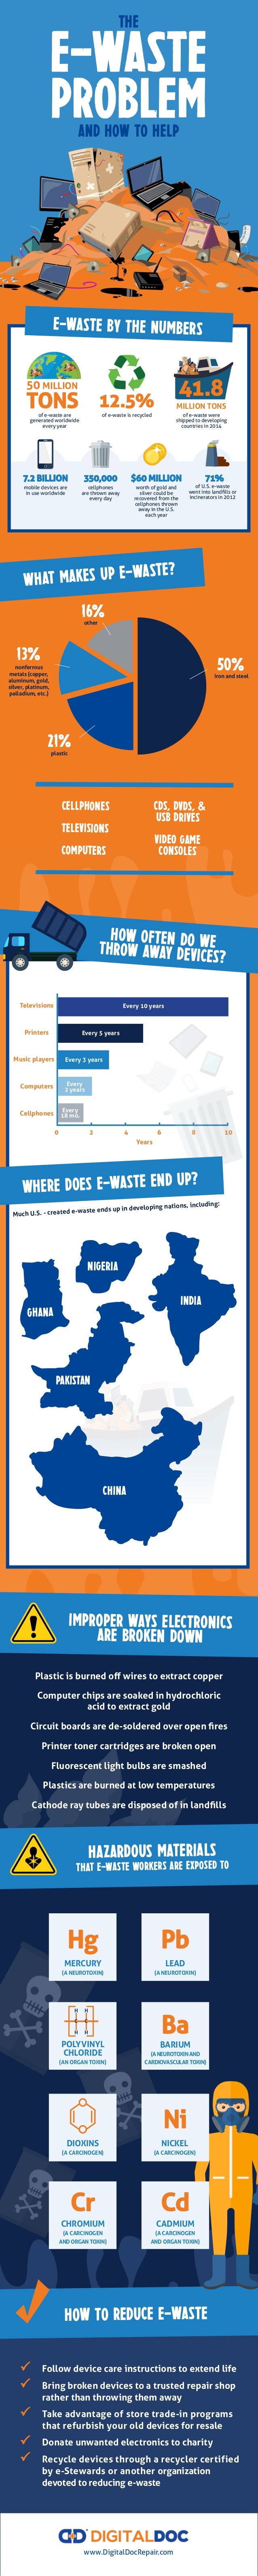 E-waste problems and solutions [Infographic] | ecogreenlove